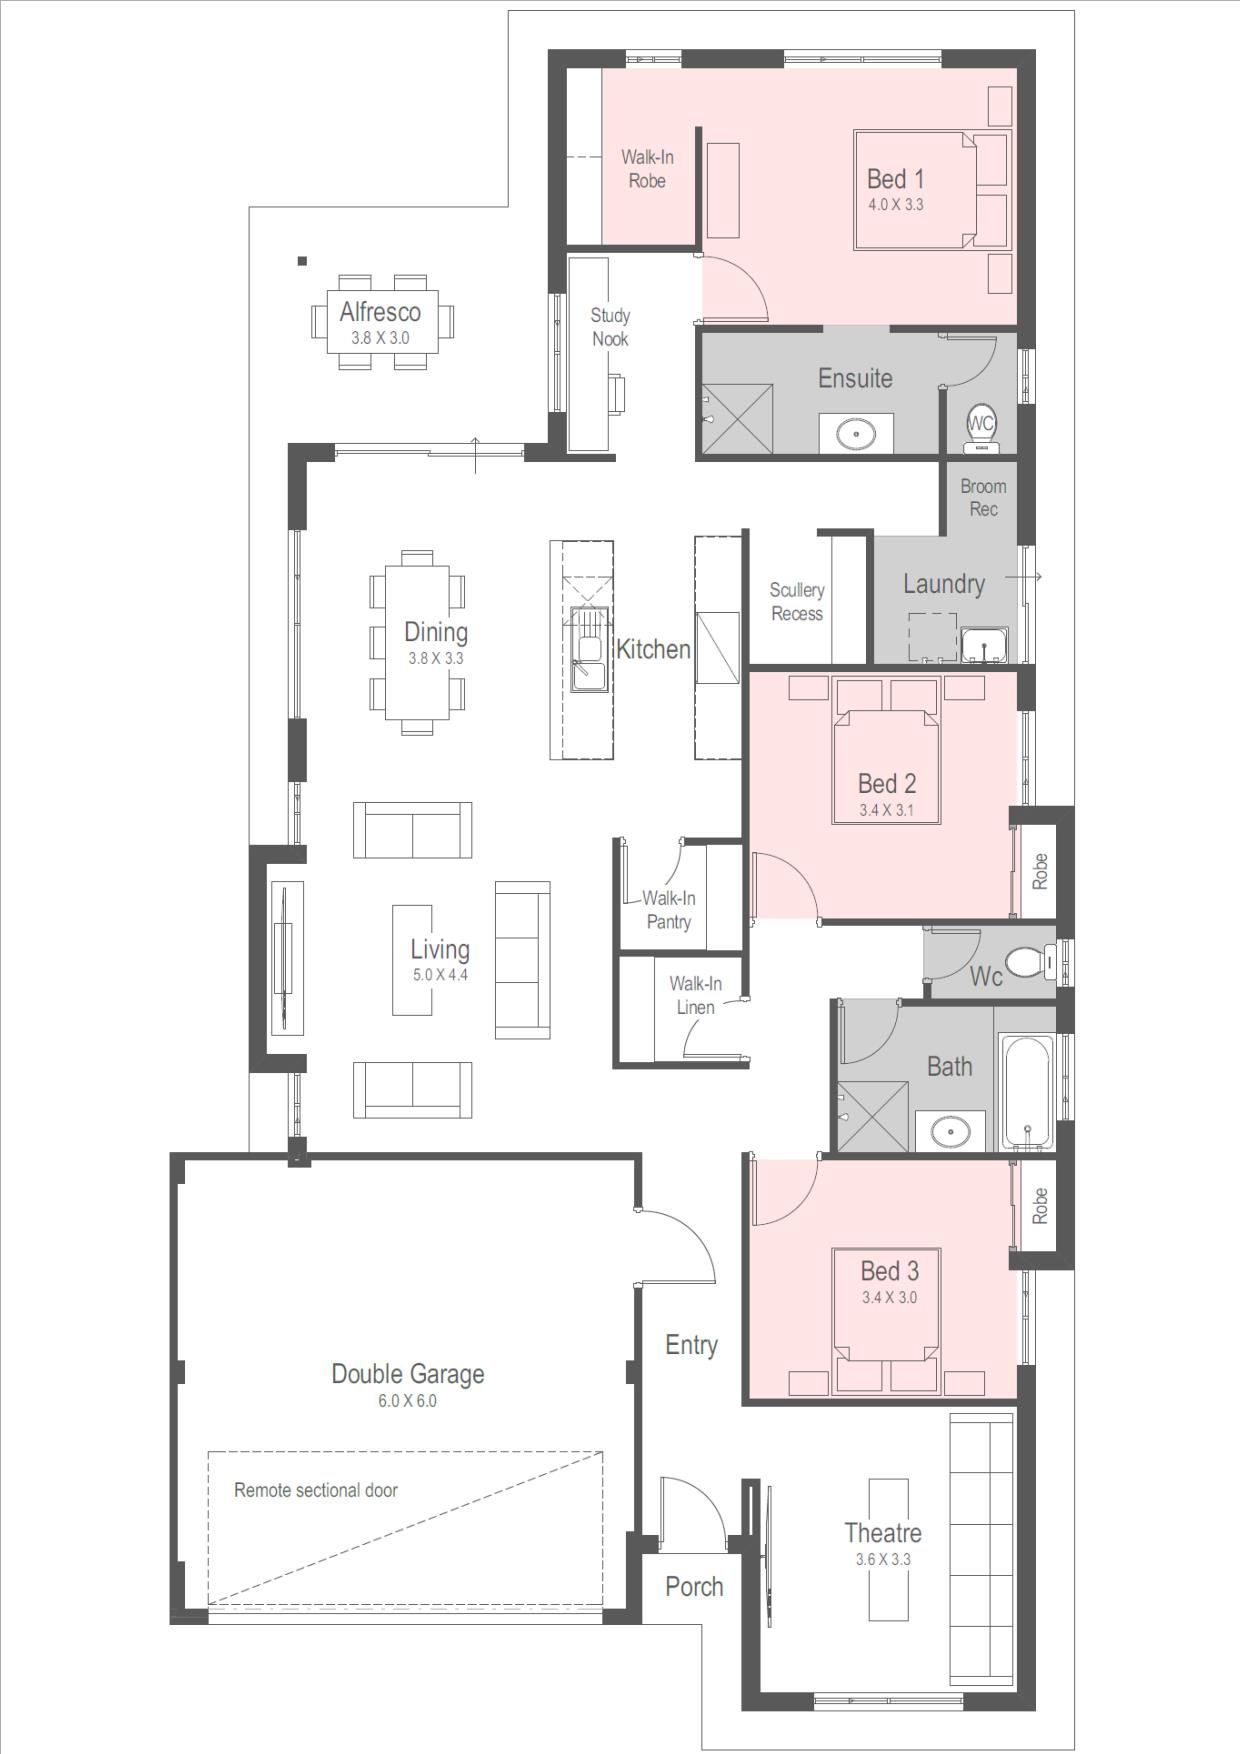 House Designs New Home Designs Perth Homebuyers Centre Architectural Floor Plans House Design House Plans